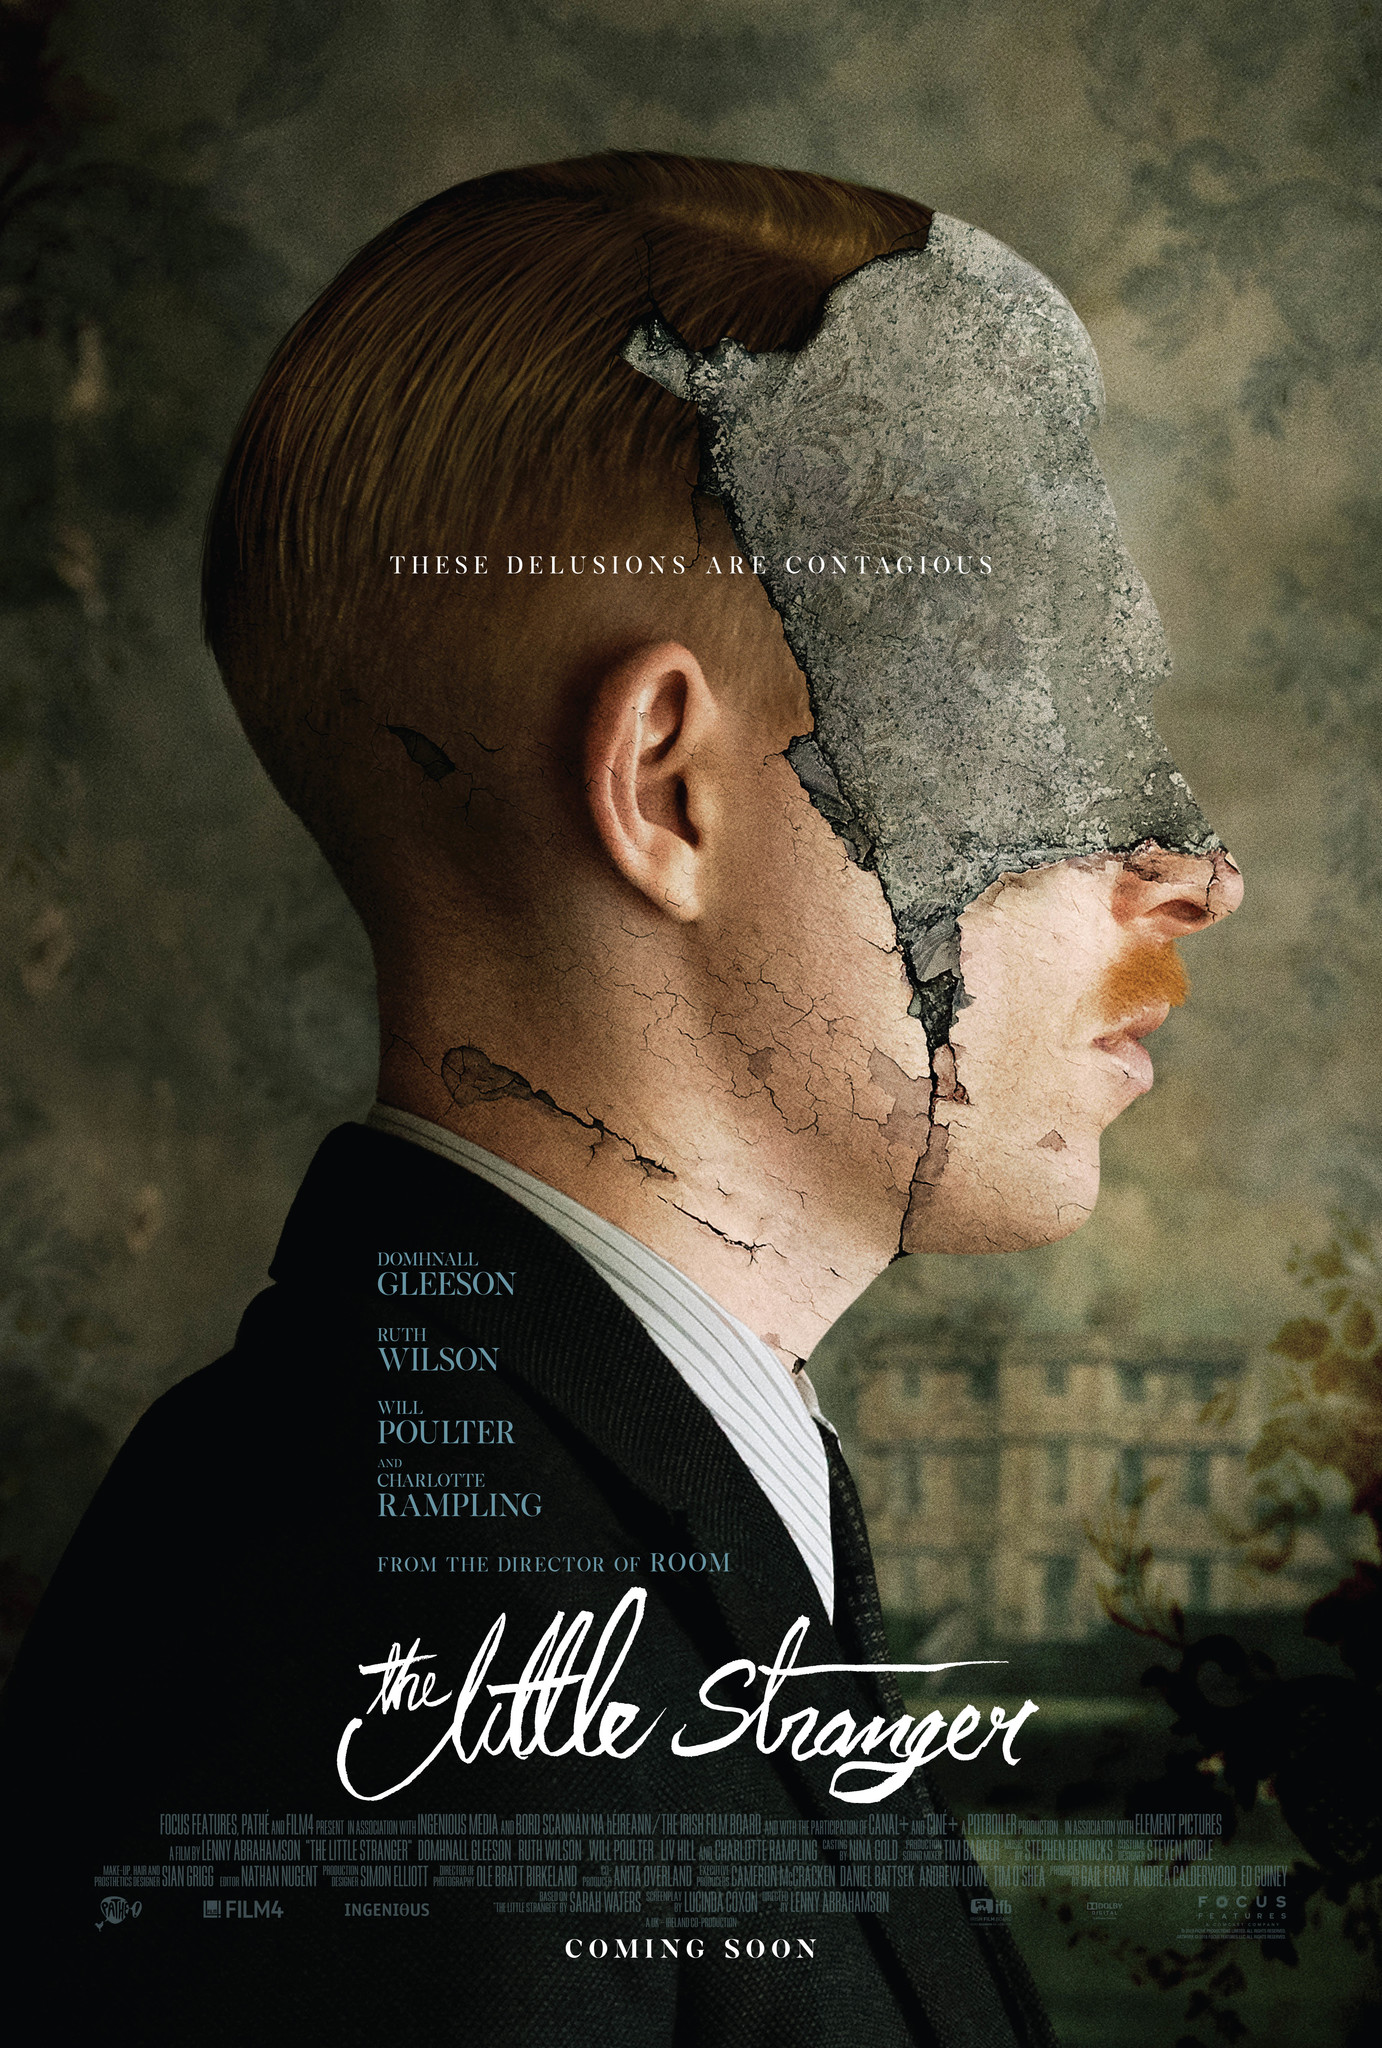 THE LITTLE STRANGER EPUB DOWNLOAD